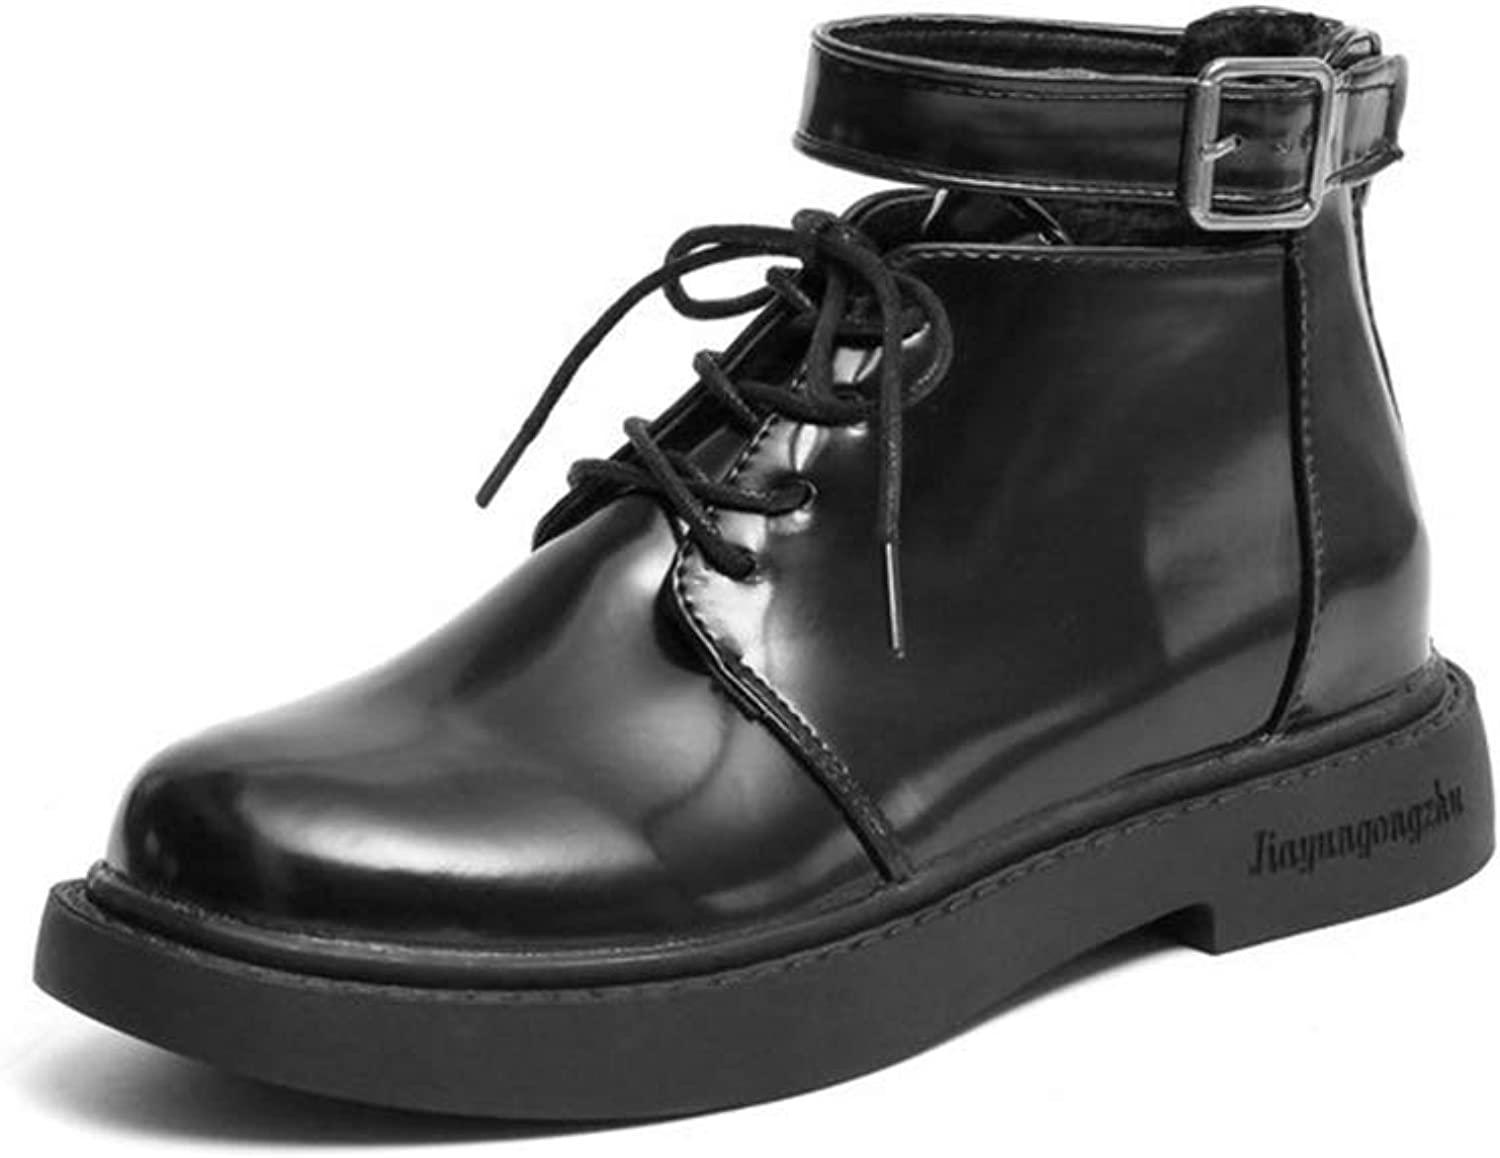 A-LING Women's Lace Up shoes Motorcycle Boots Martin Boots